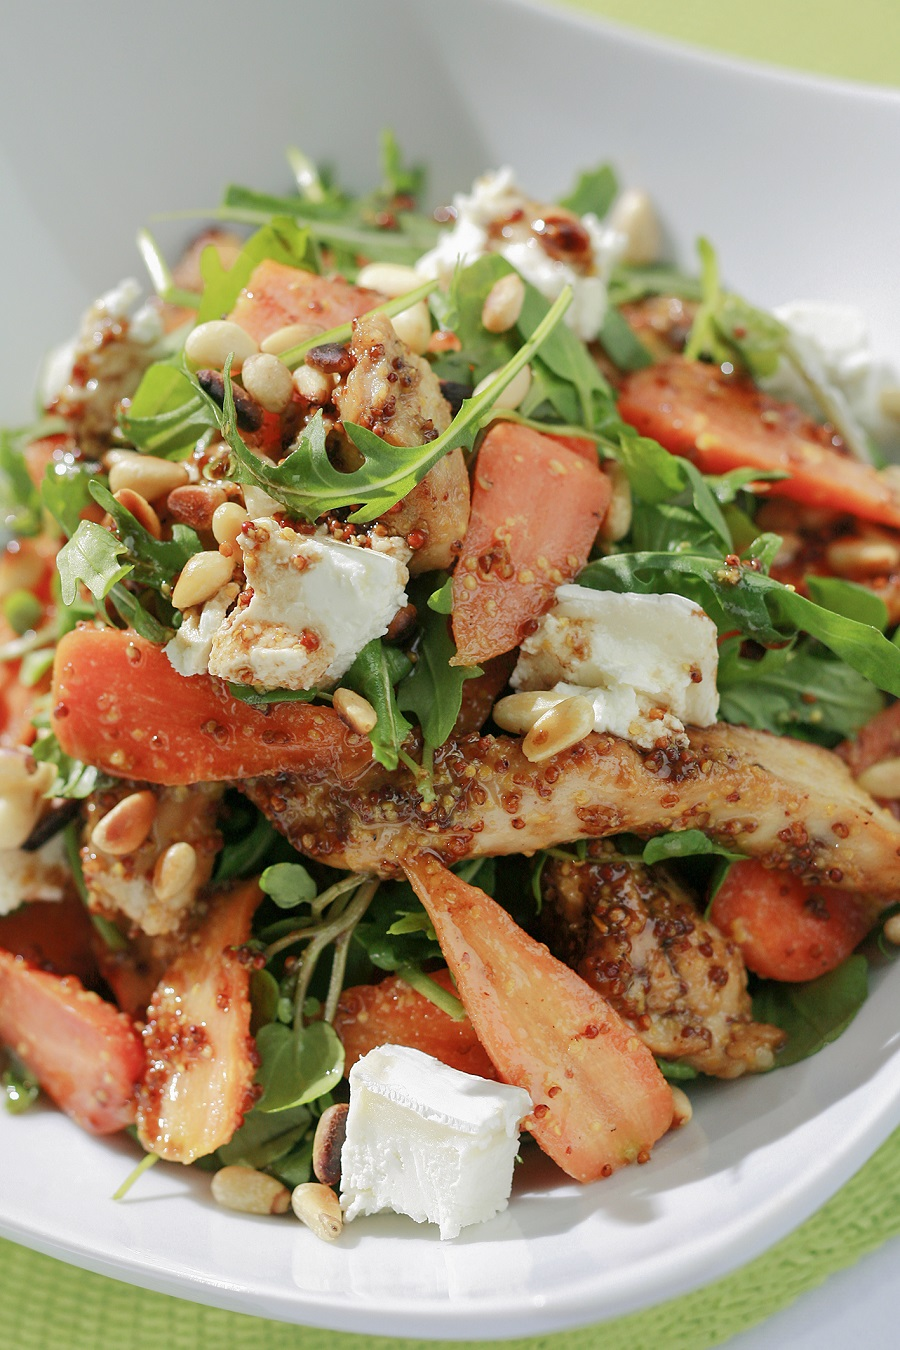 Honey Mustard Turkey And Chantenay Salad With Pine Nuts And Goats Cheese